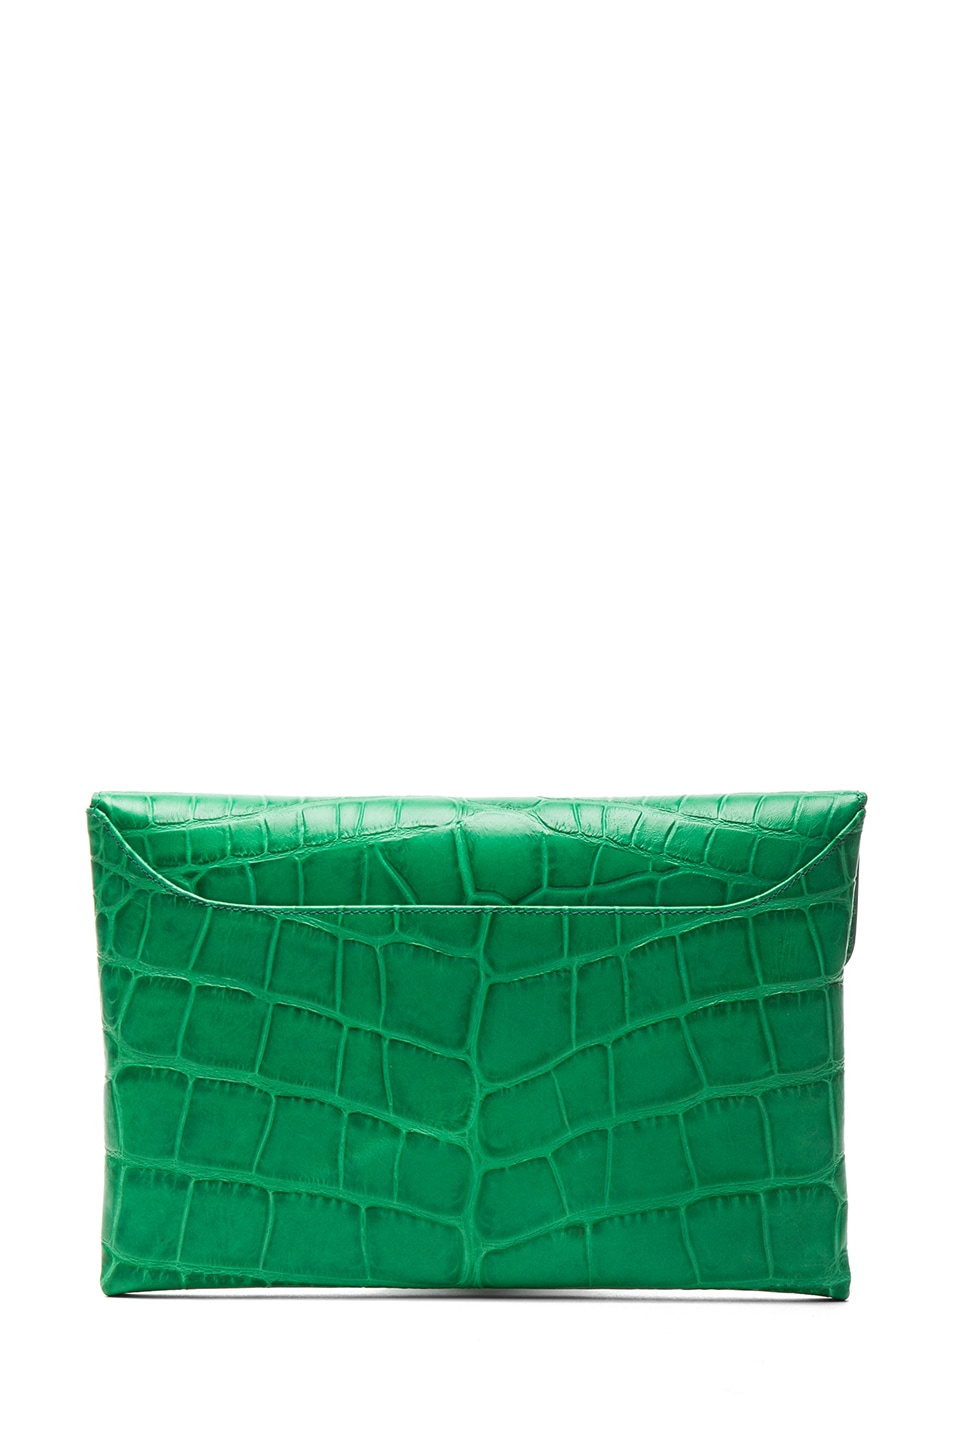 Image 2 of GIVENCHY Medium Antigona Envelope Stamped Croc Clutch in Emerald Green